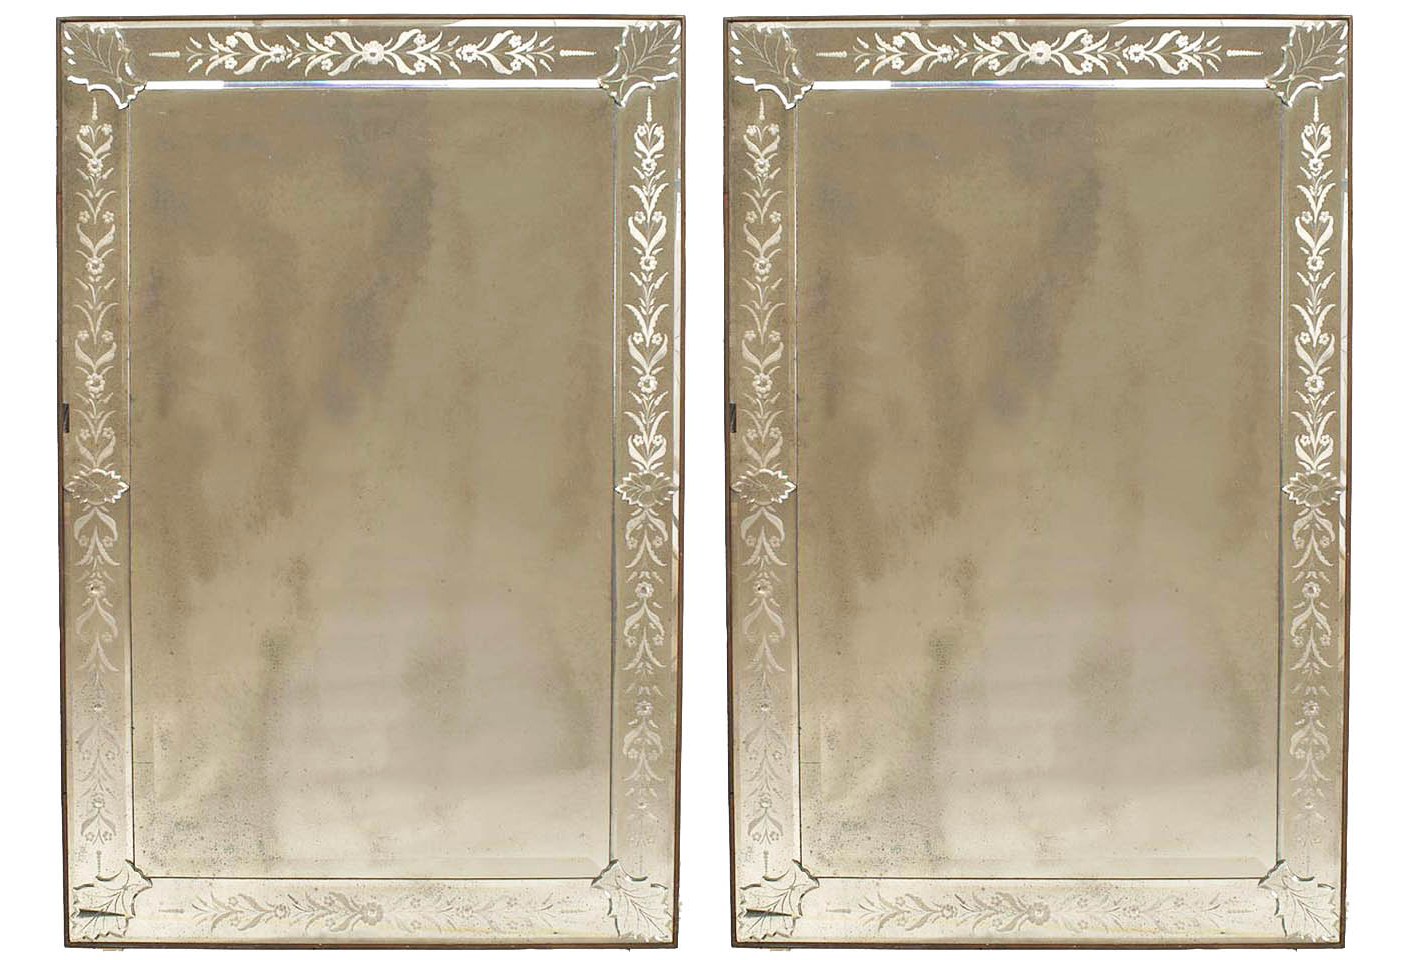 Etched Wall Mirrors Intended For Favorite Italian Venetian Murano Etched Wall Mirrors (View 12 of 20)